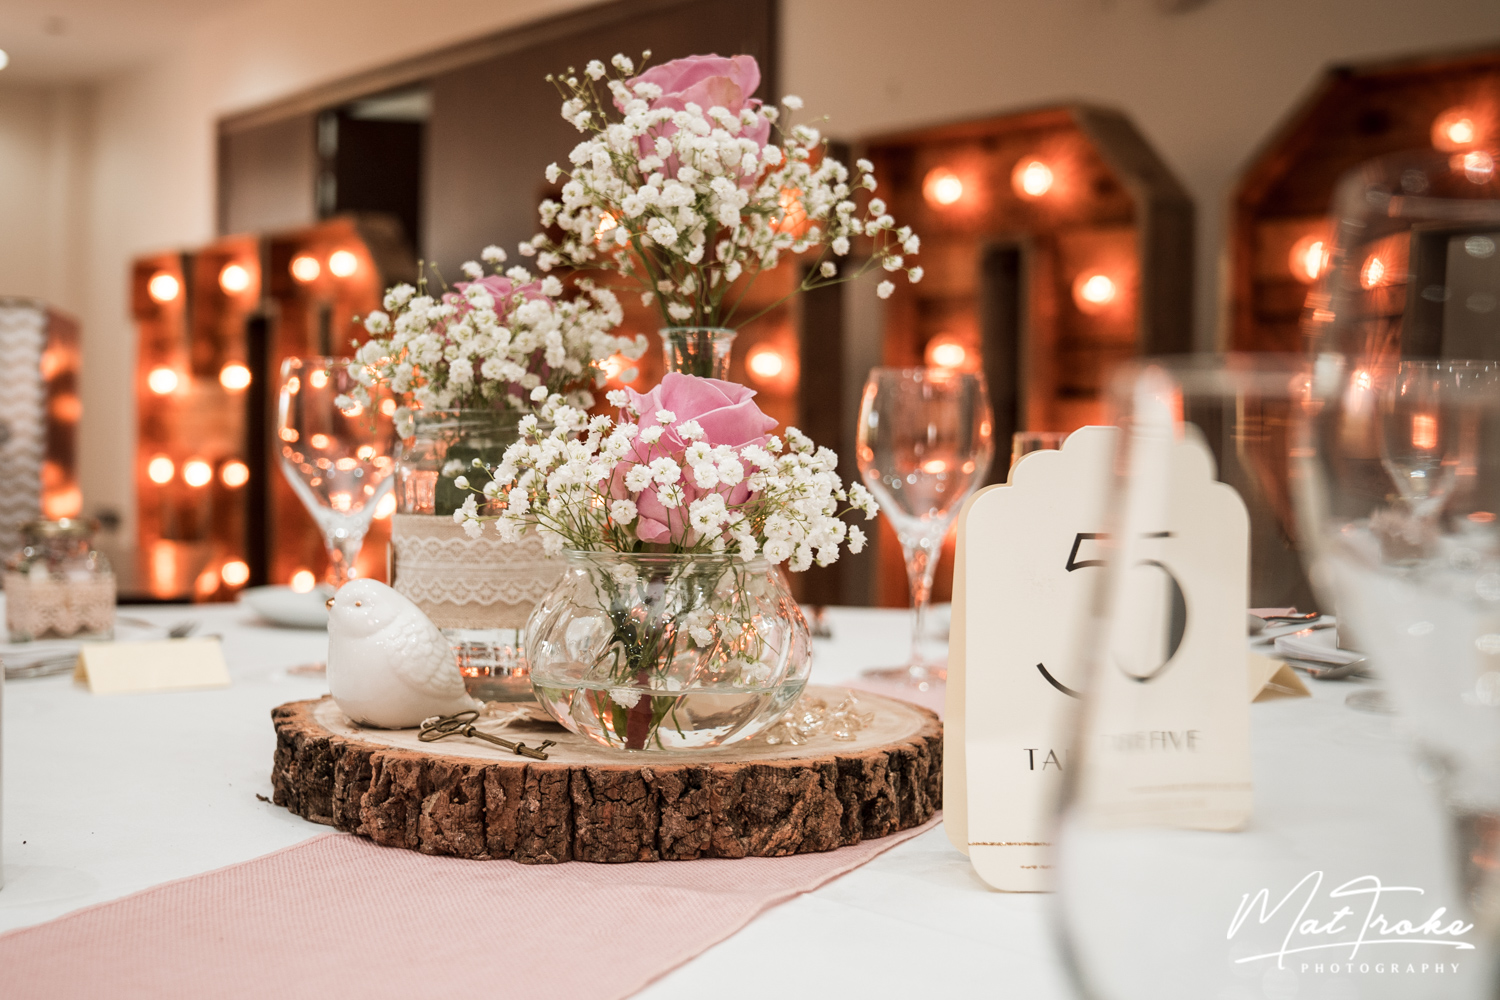 table-set-flowerd-light-up-letters-white-heart-inn-moorwood-alfreton-wedding-photographer-photography-sunset-venue